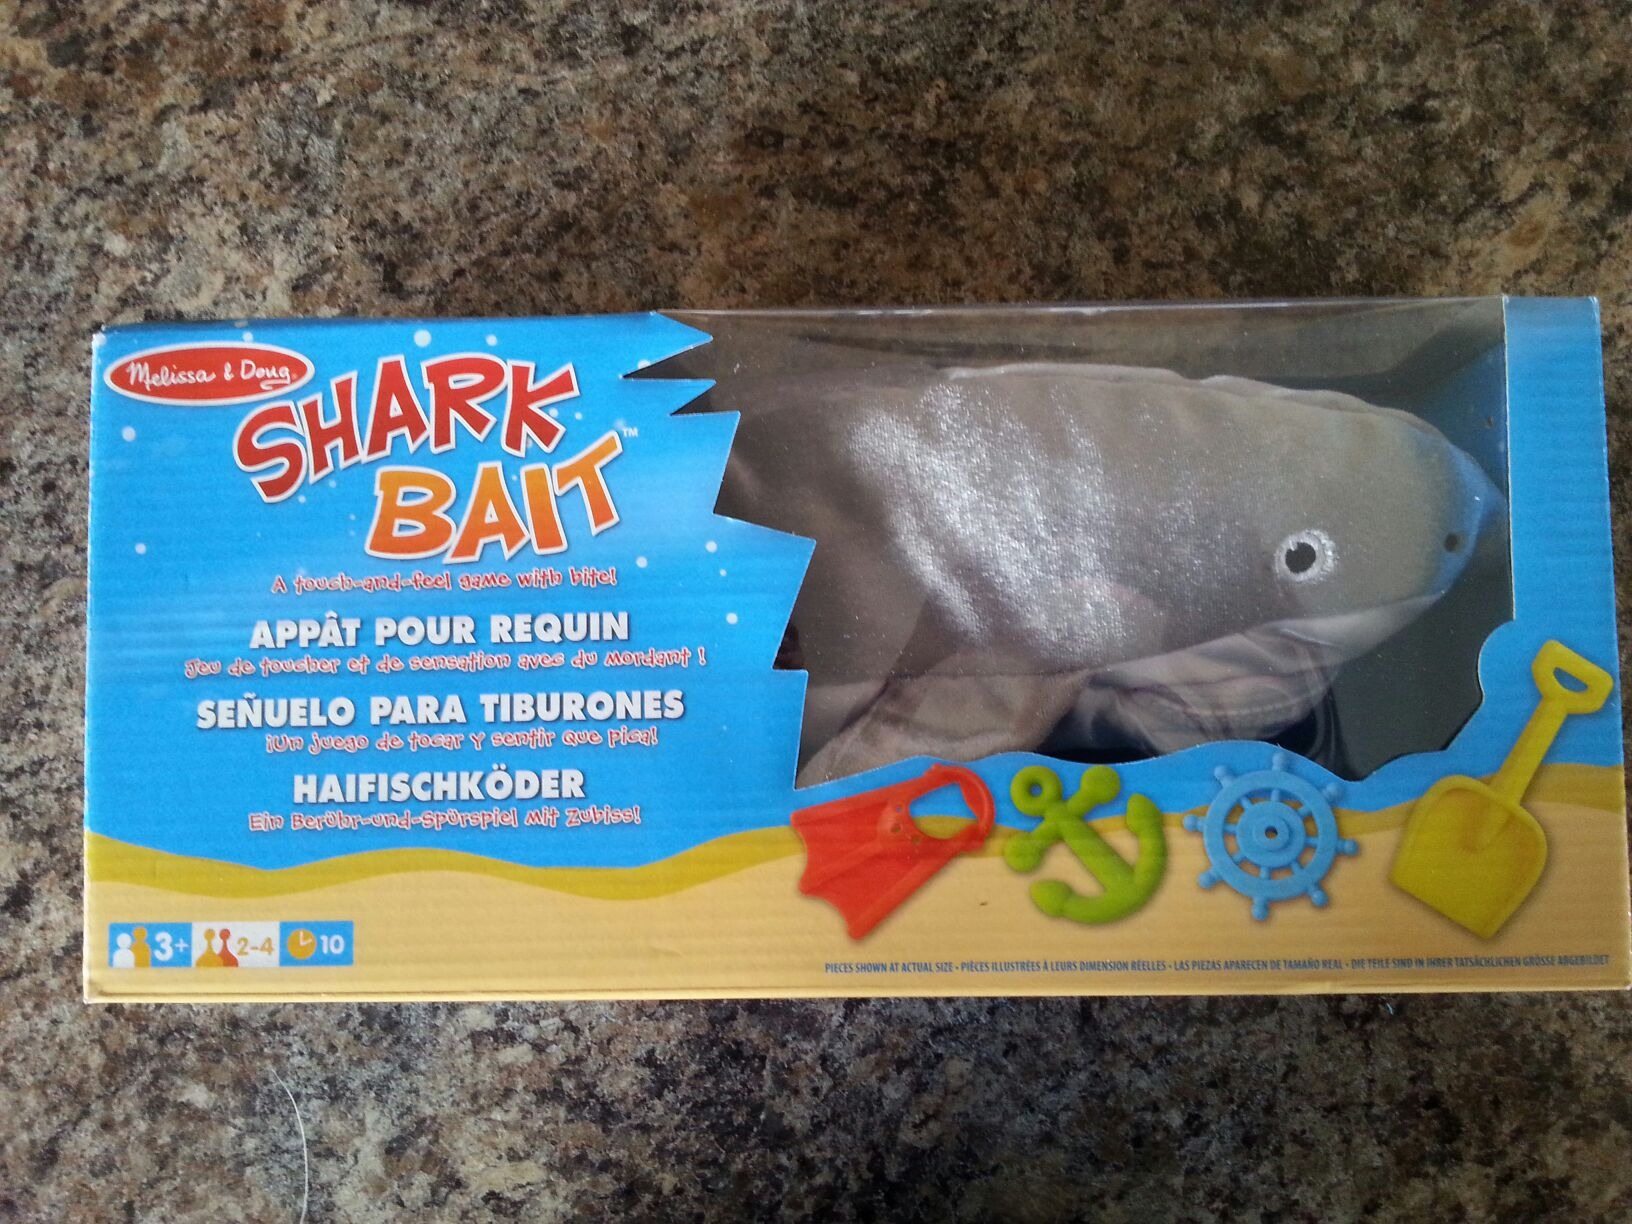 Shark Bait Board Game - melissa and doug (Children's Game) front image (front cover)